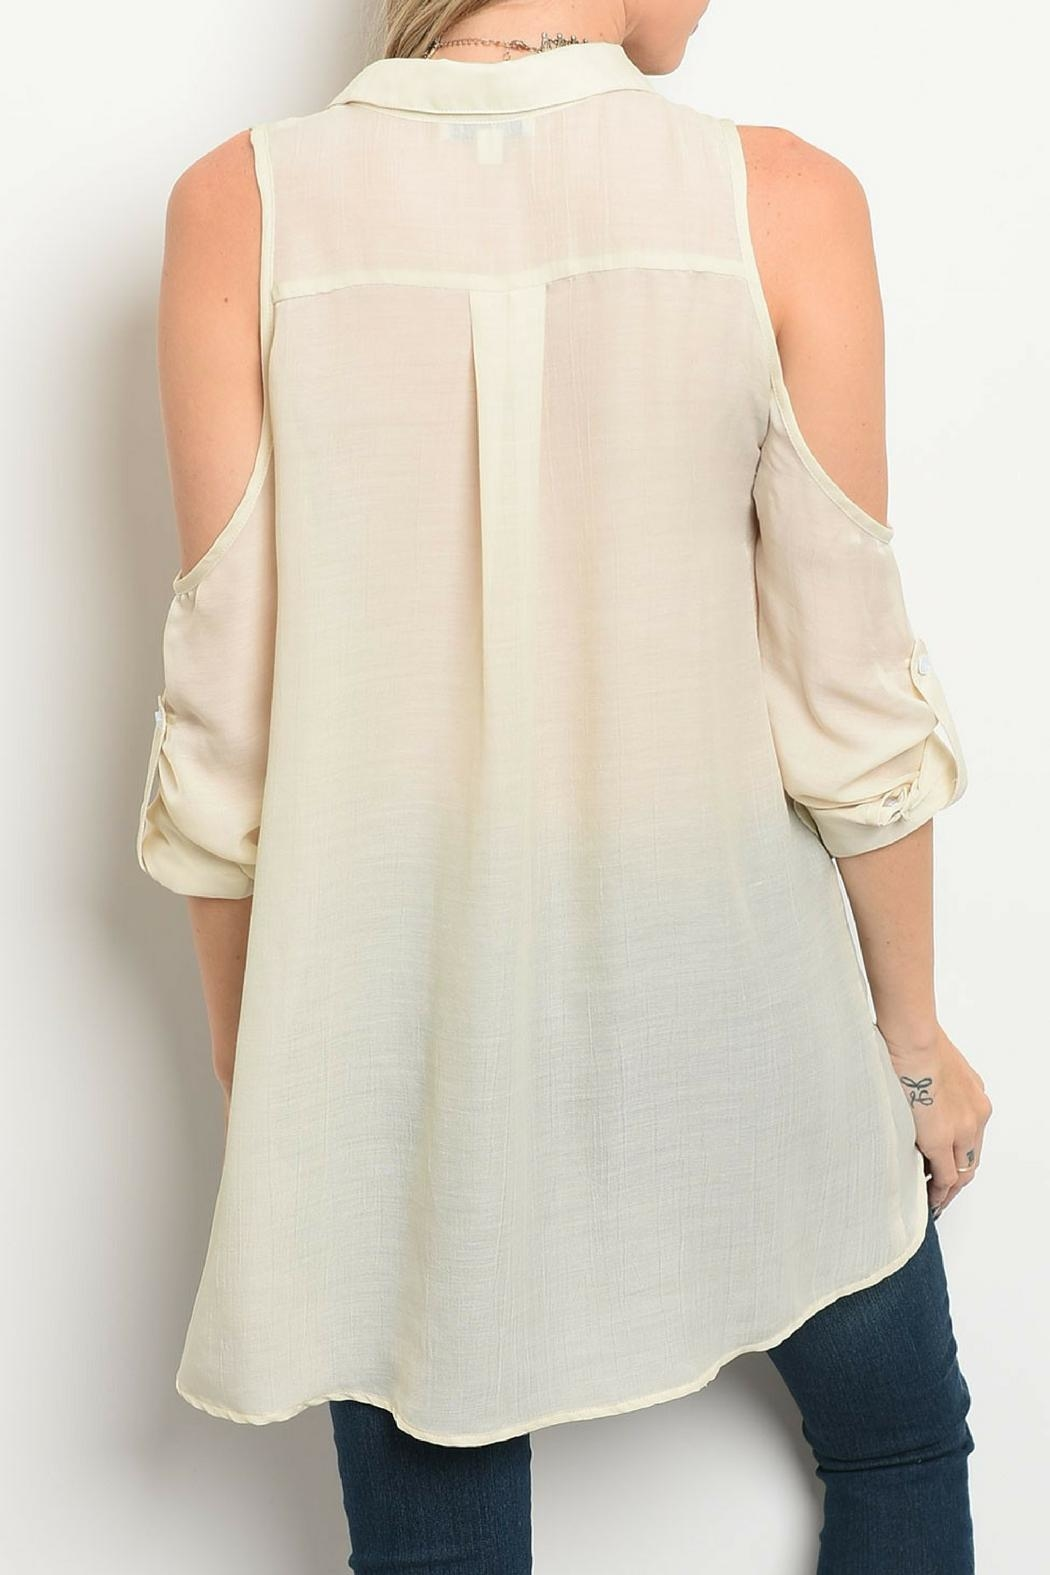 Tassels N Lace Beige Lace Top - Front Full Image